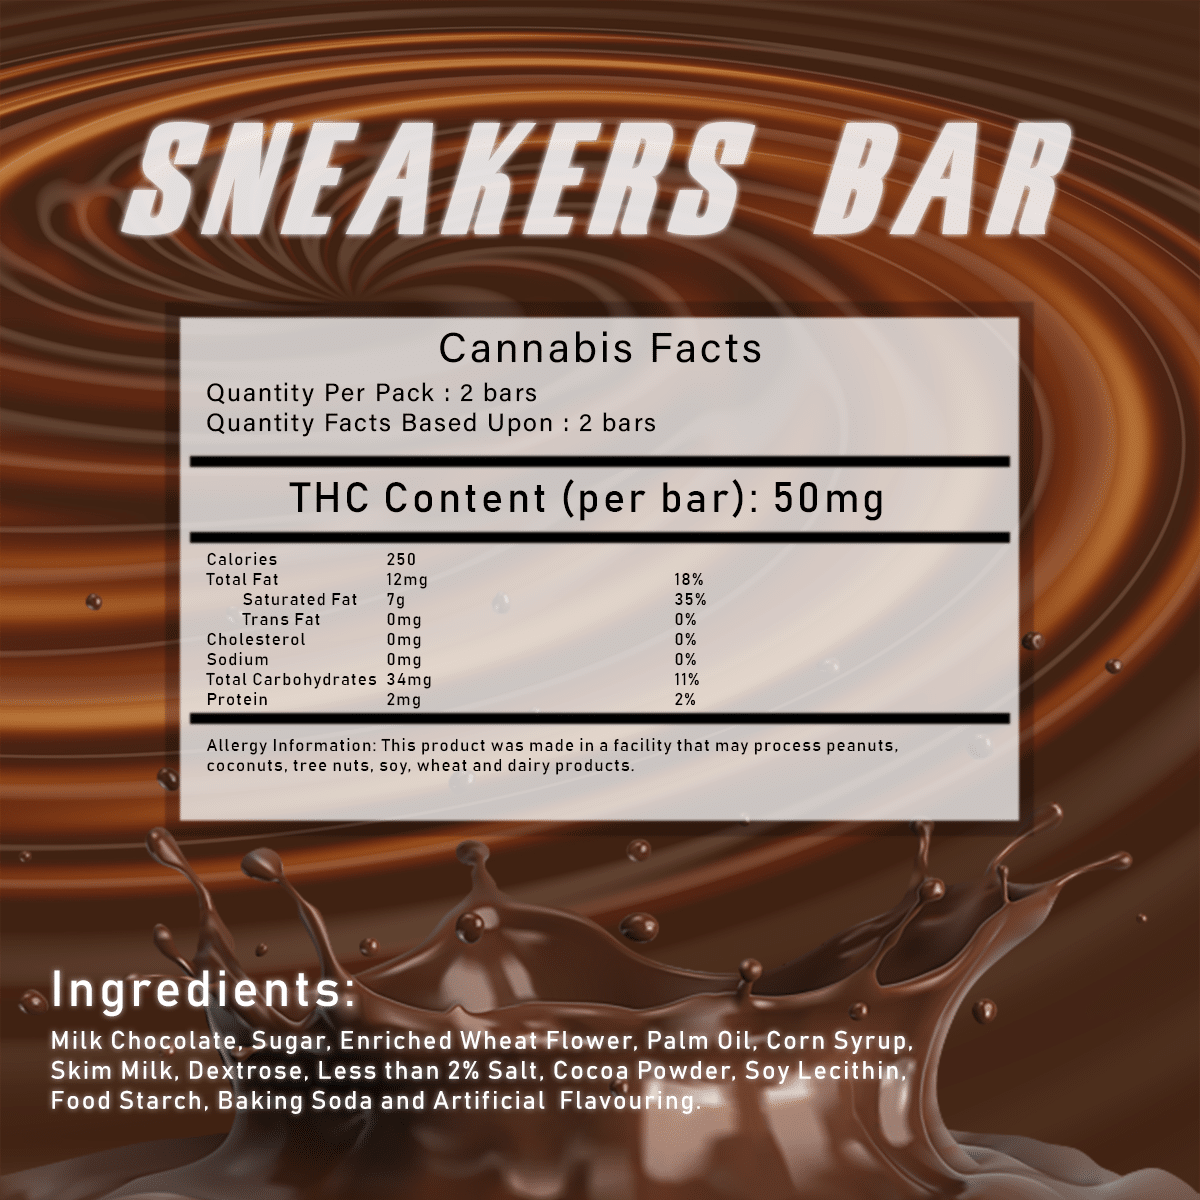 Sneakers Bar by Herbivores Edibles by Green Society - Image © 2018 Green Society. All Rights Reserved.